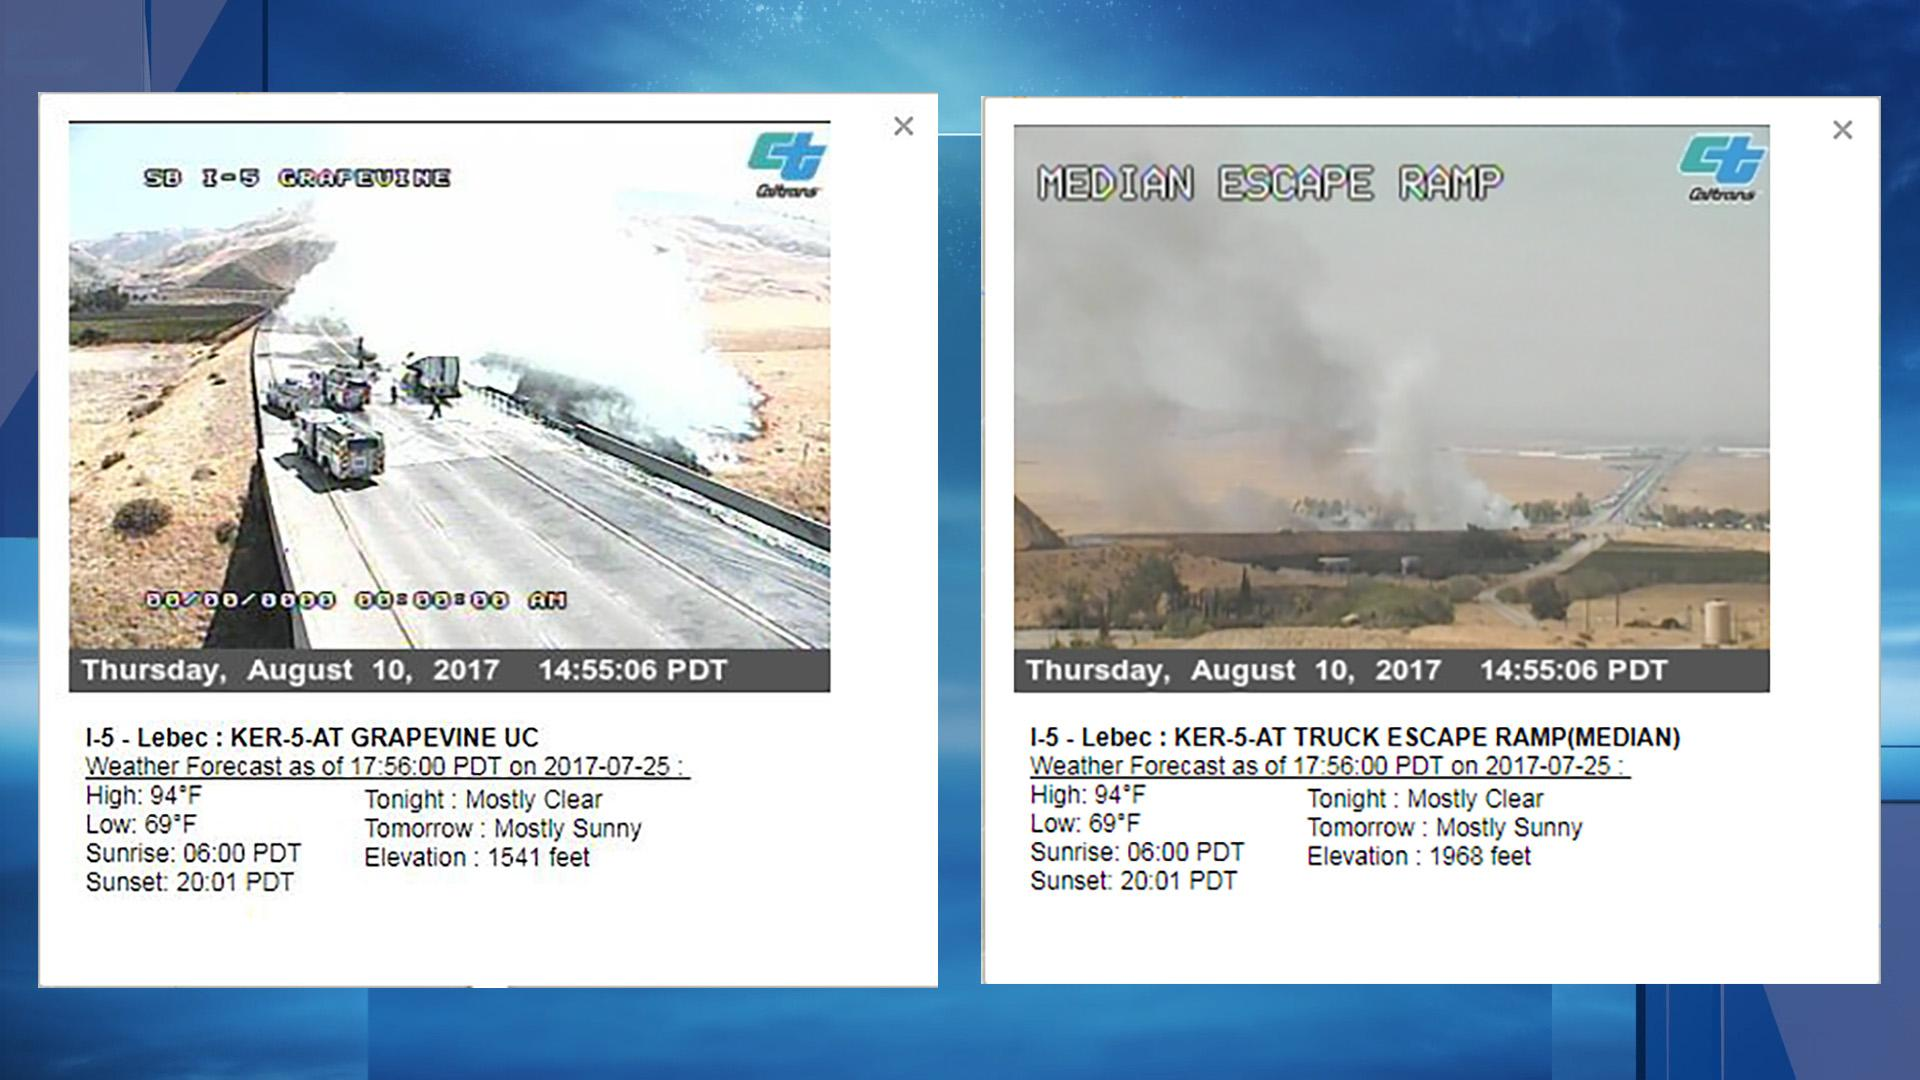 Images taken from Caltrans web cameras show the aftermath of what the California Highway Patrol reports is a crash on southbound Interstate 5 at Grapevine Road, south of Bakersfield, Calif.